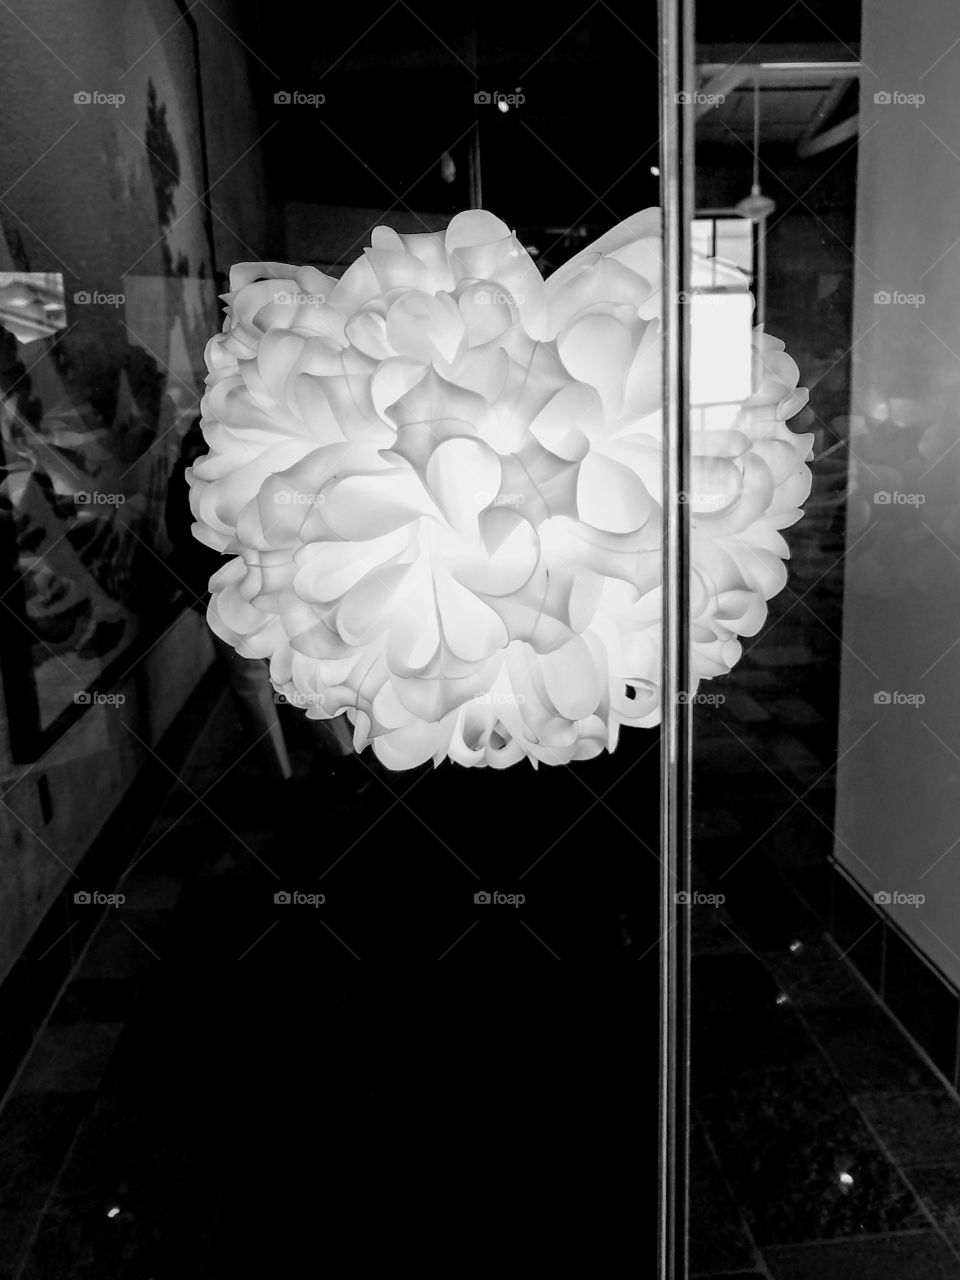 Black and White Fine Art Light made from Plastic